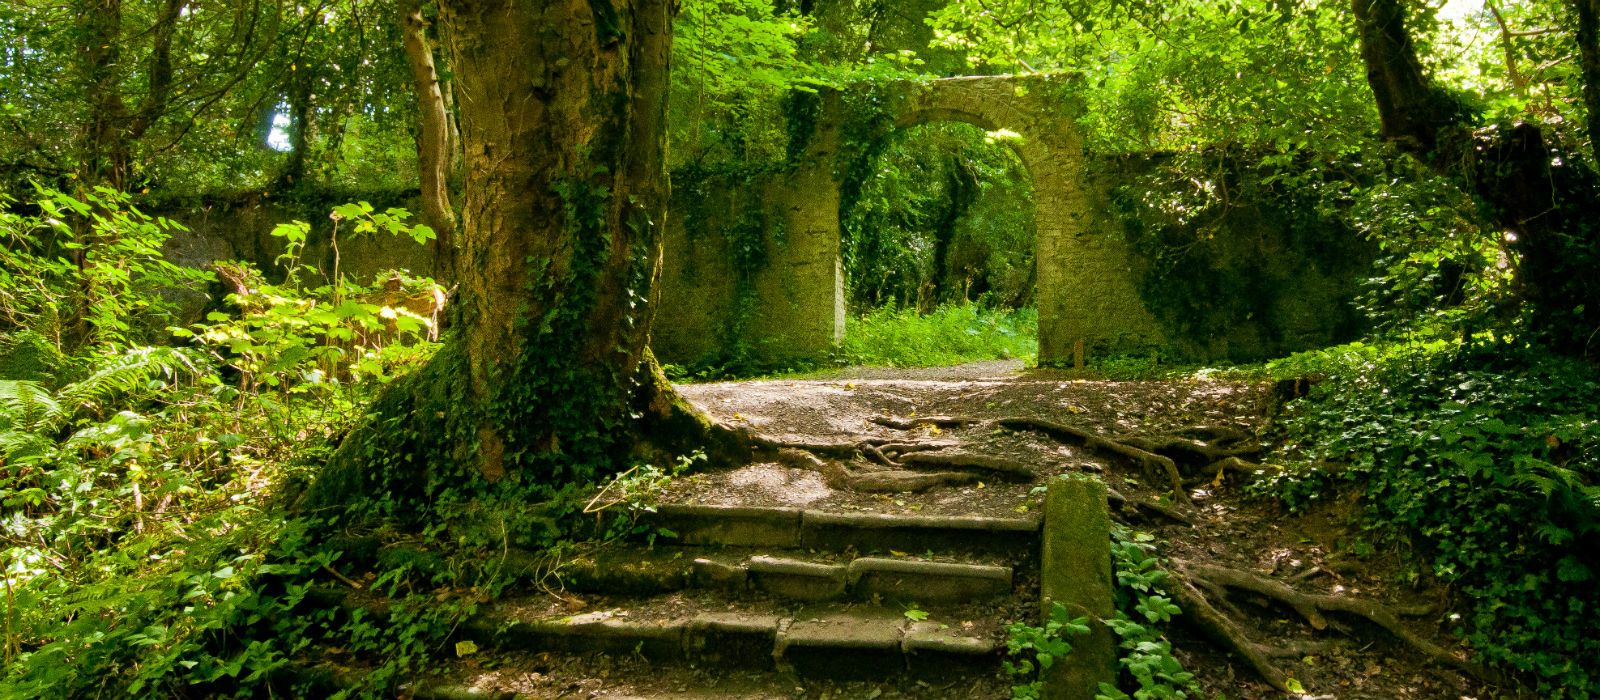 Castle gate & Gardens, accommodation by Discover Ireland Tours Destination Management Company